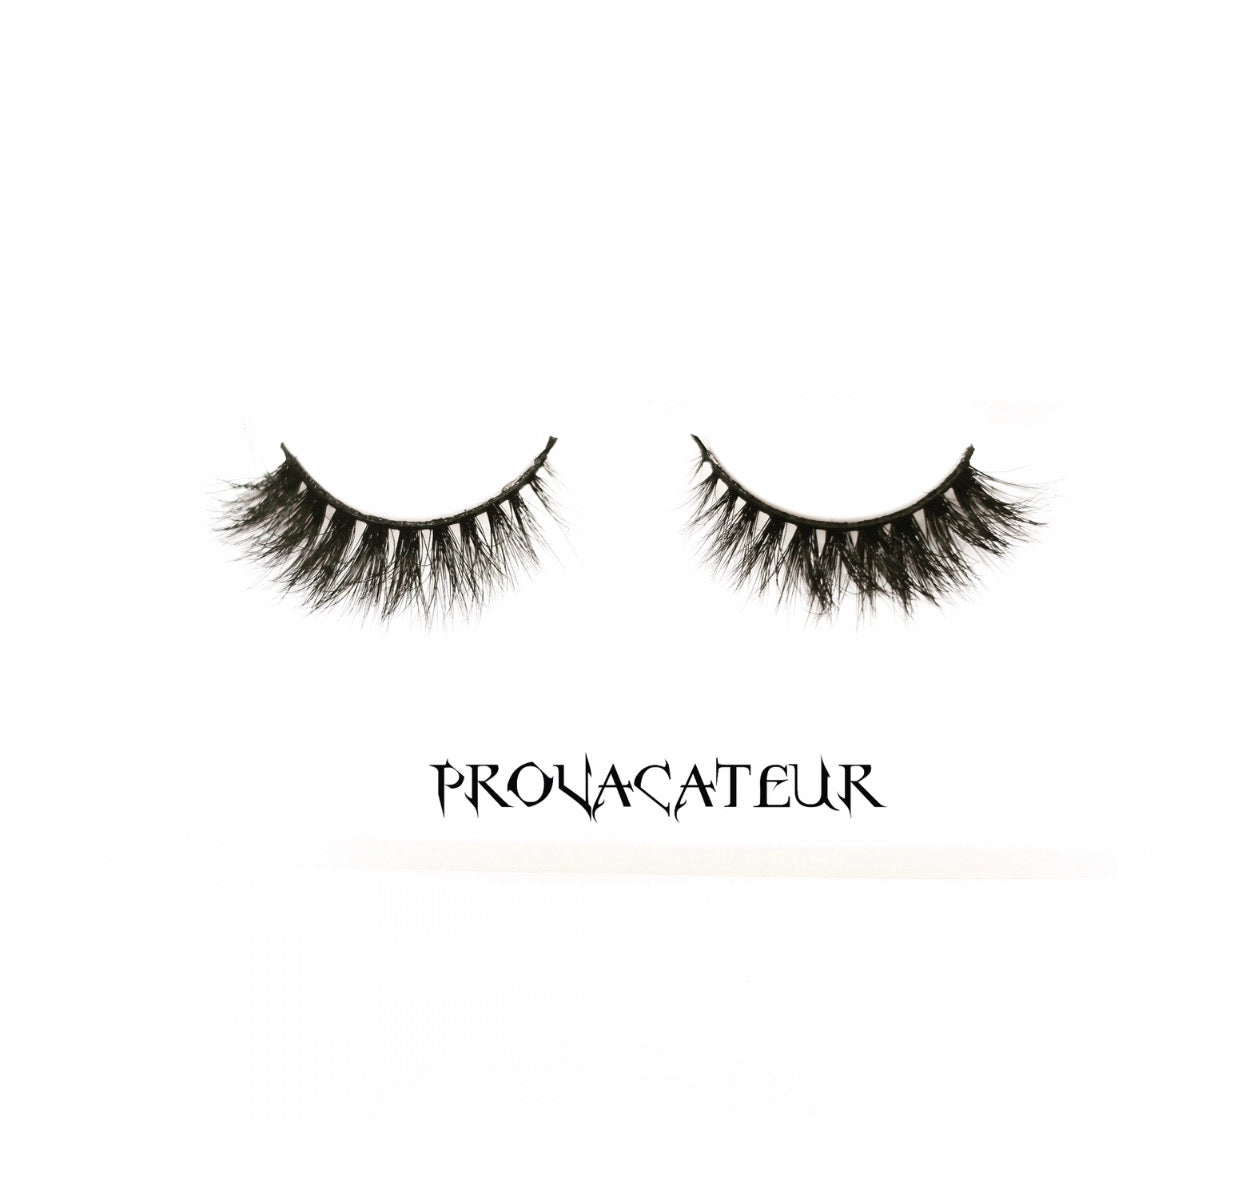 PROVOCATEUR - 3D Lashes